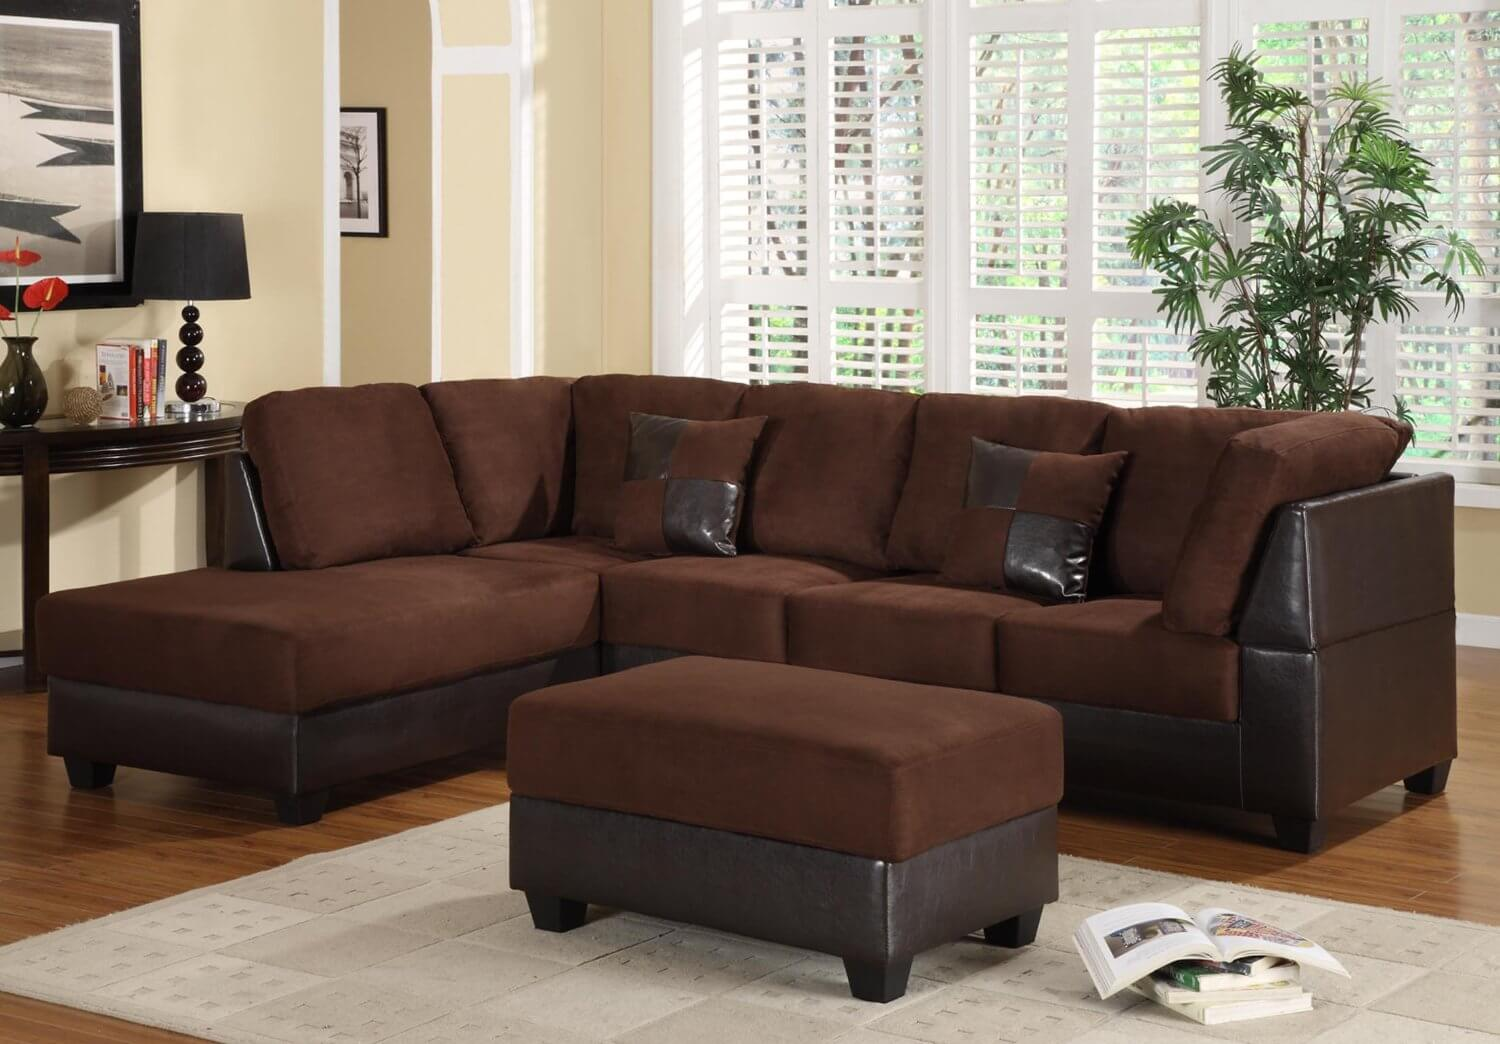 40 Cheap Sectional Sofas Under $500